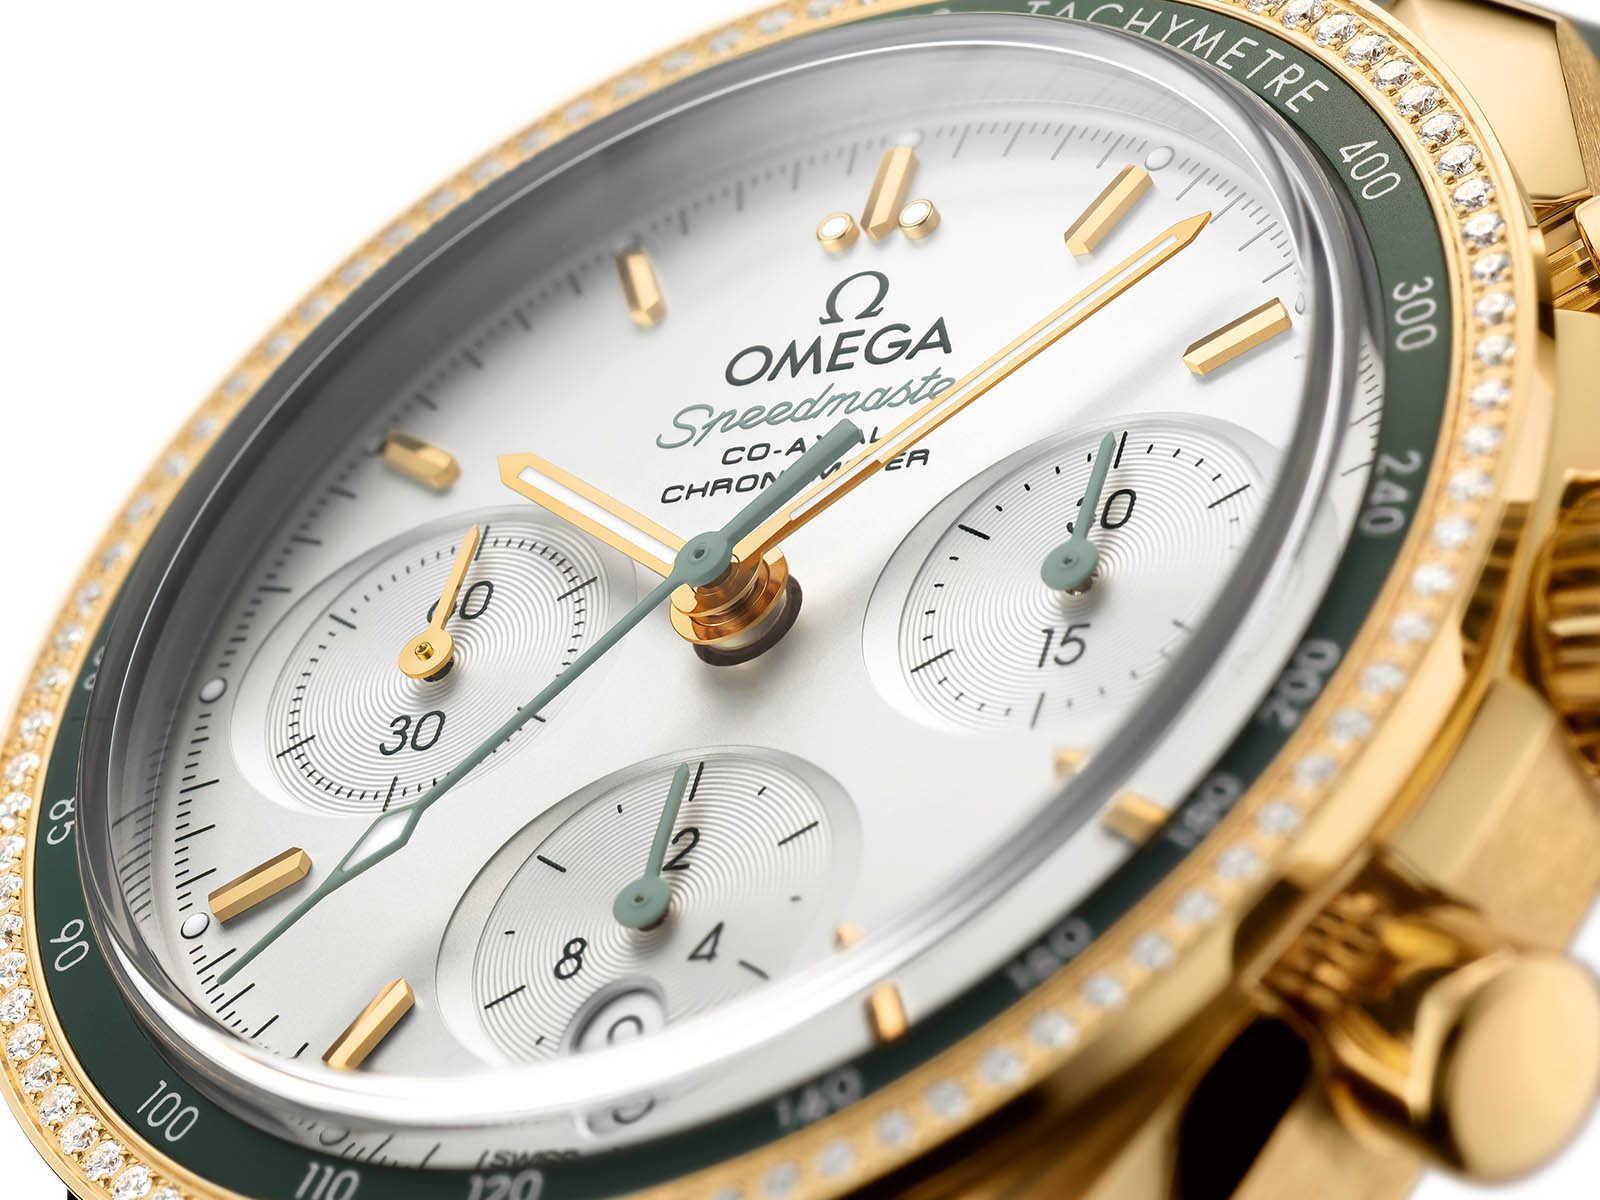 324-68-38-50-02-004-omega-speedmaster-38-co-axial-chronograph-38mm-yellow-gold-diamond-4.jpg